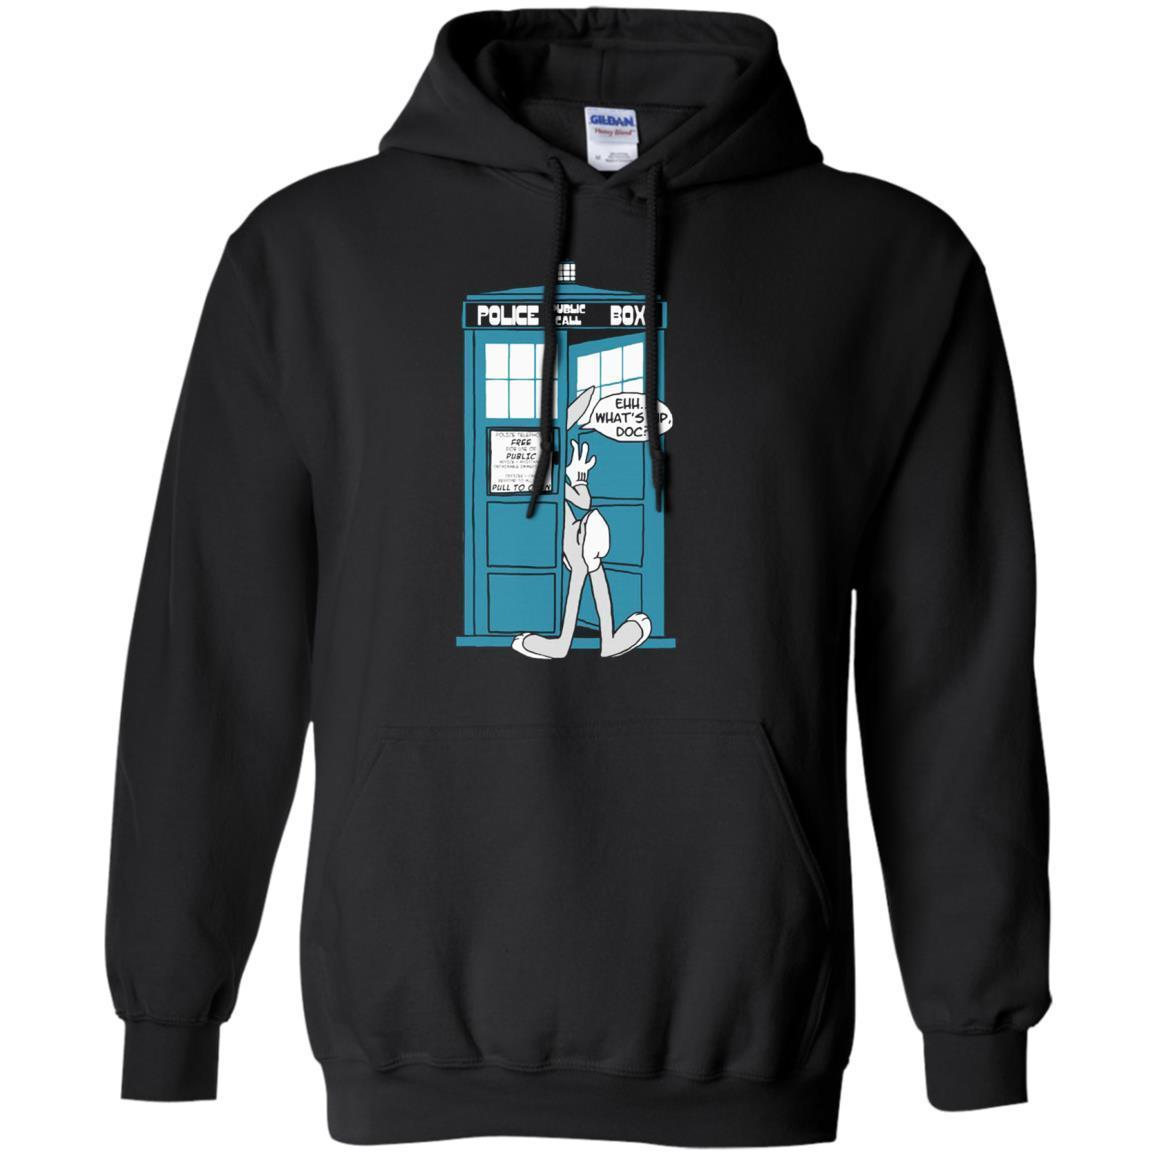 Cover Your Body With Amazing Police Public Call Box Bugs Bunny Doctor Who Mashup S Shirts